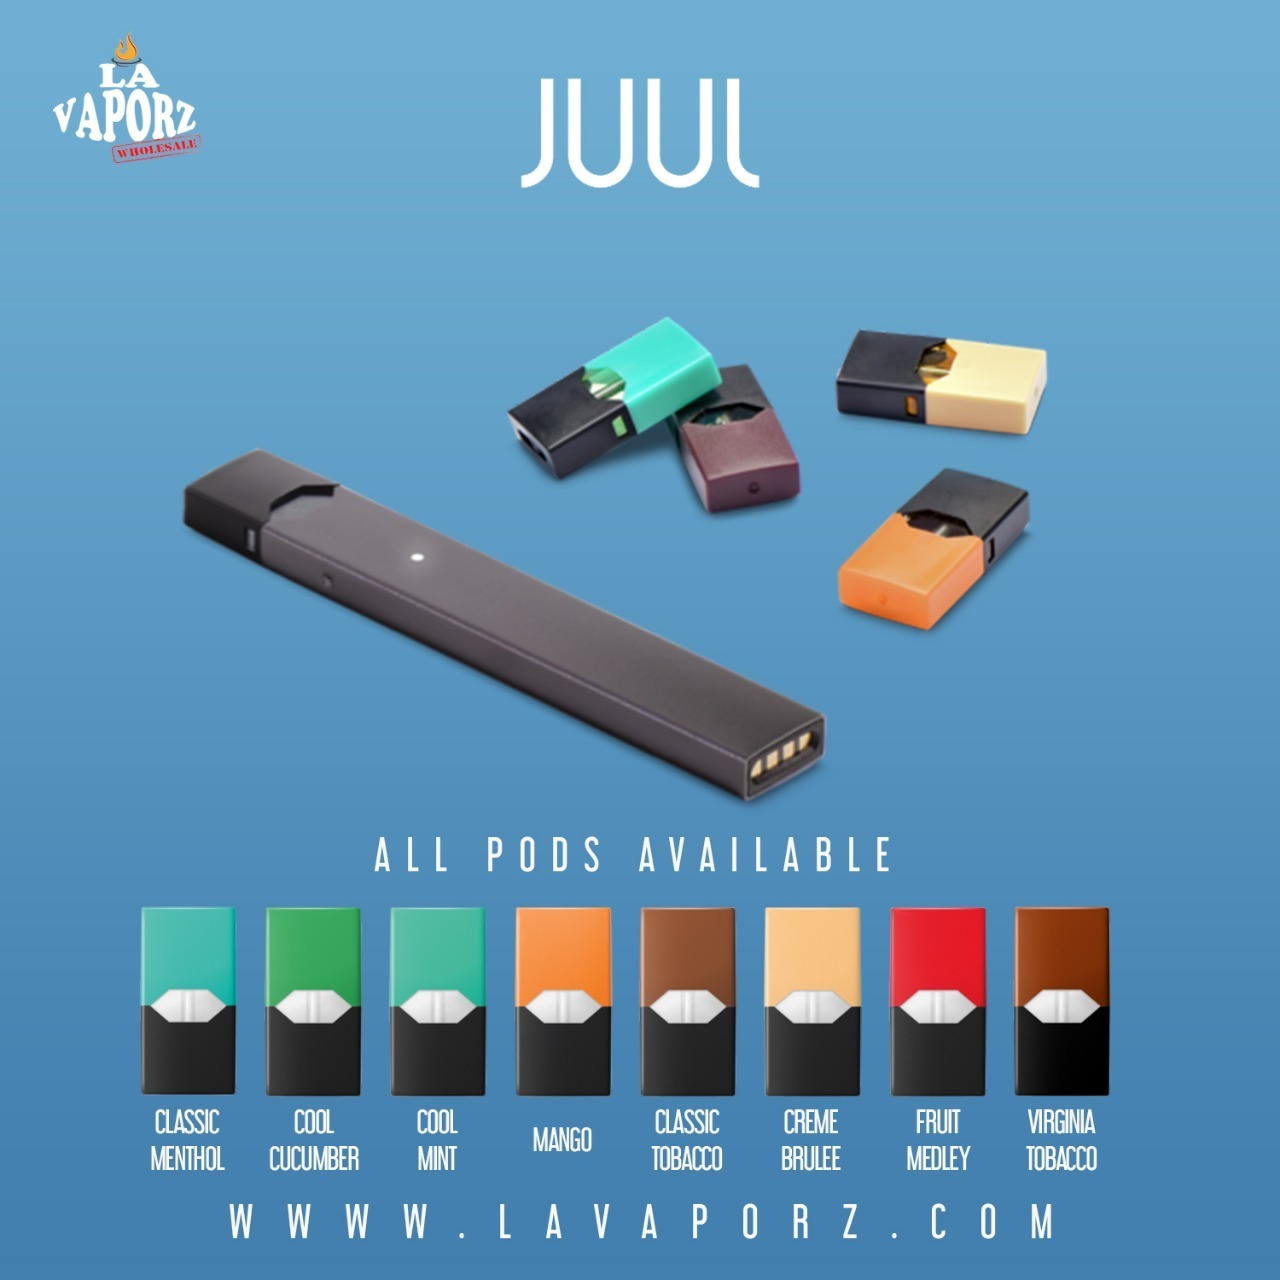 Juul Kit by Juul | LA VAPORZ Wholesale | vapor